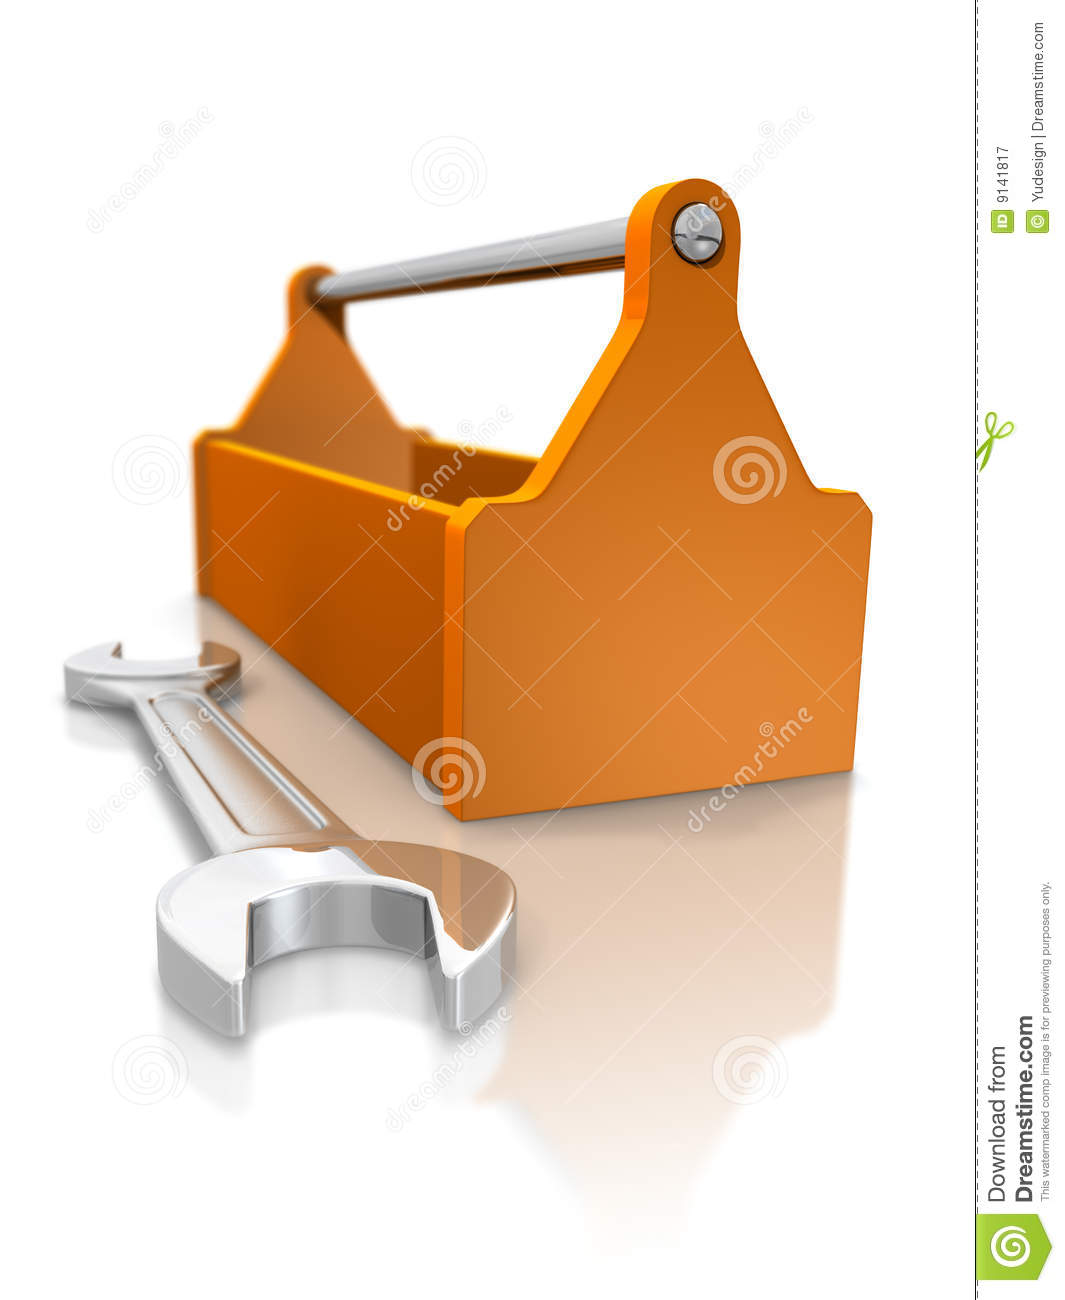 Toolbox and spanner